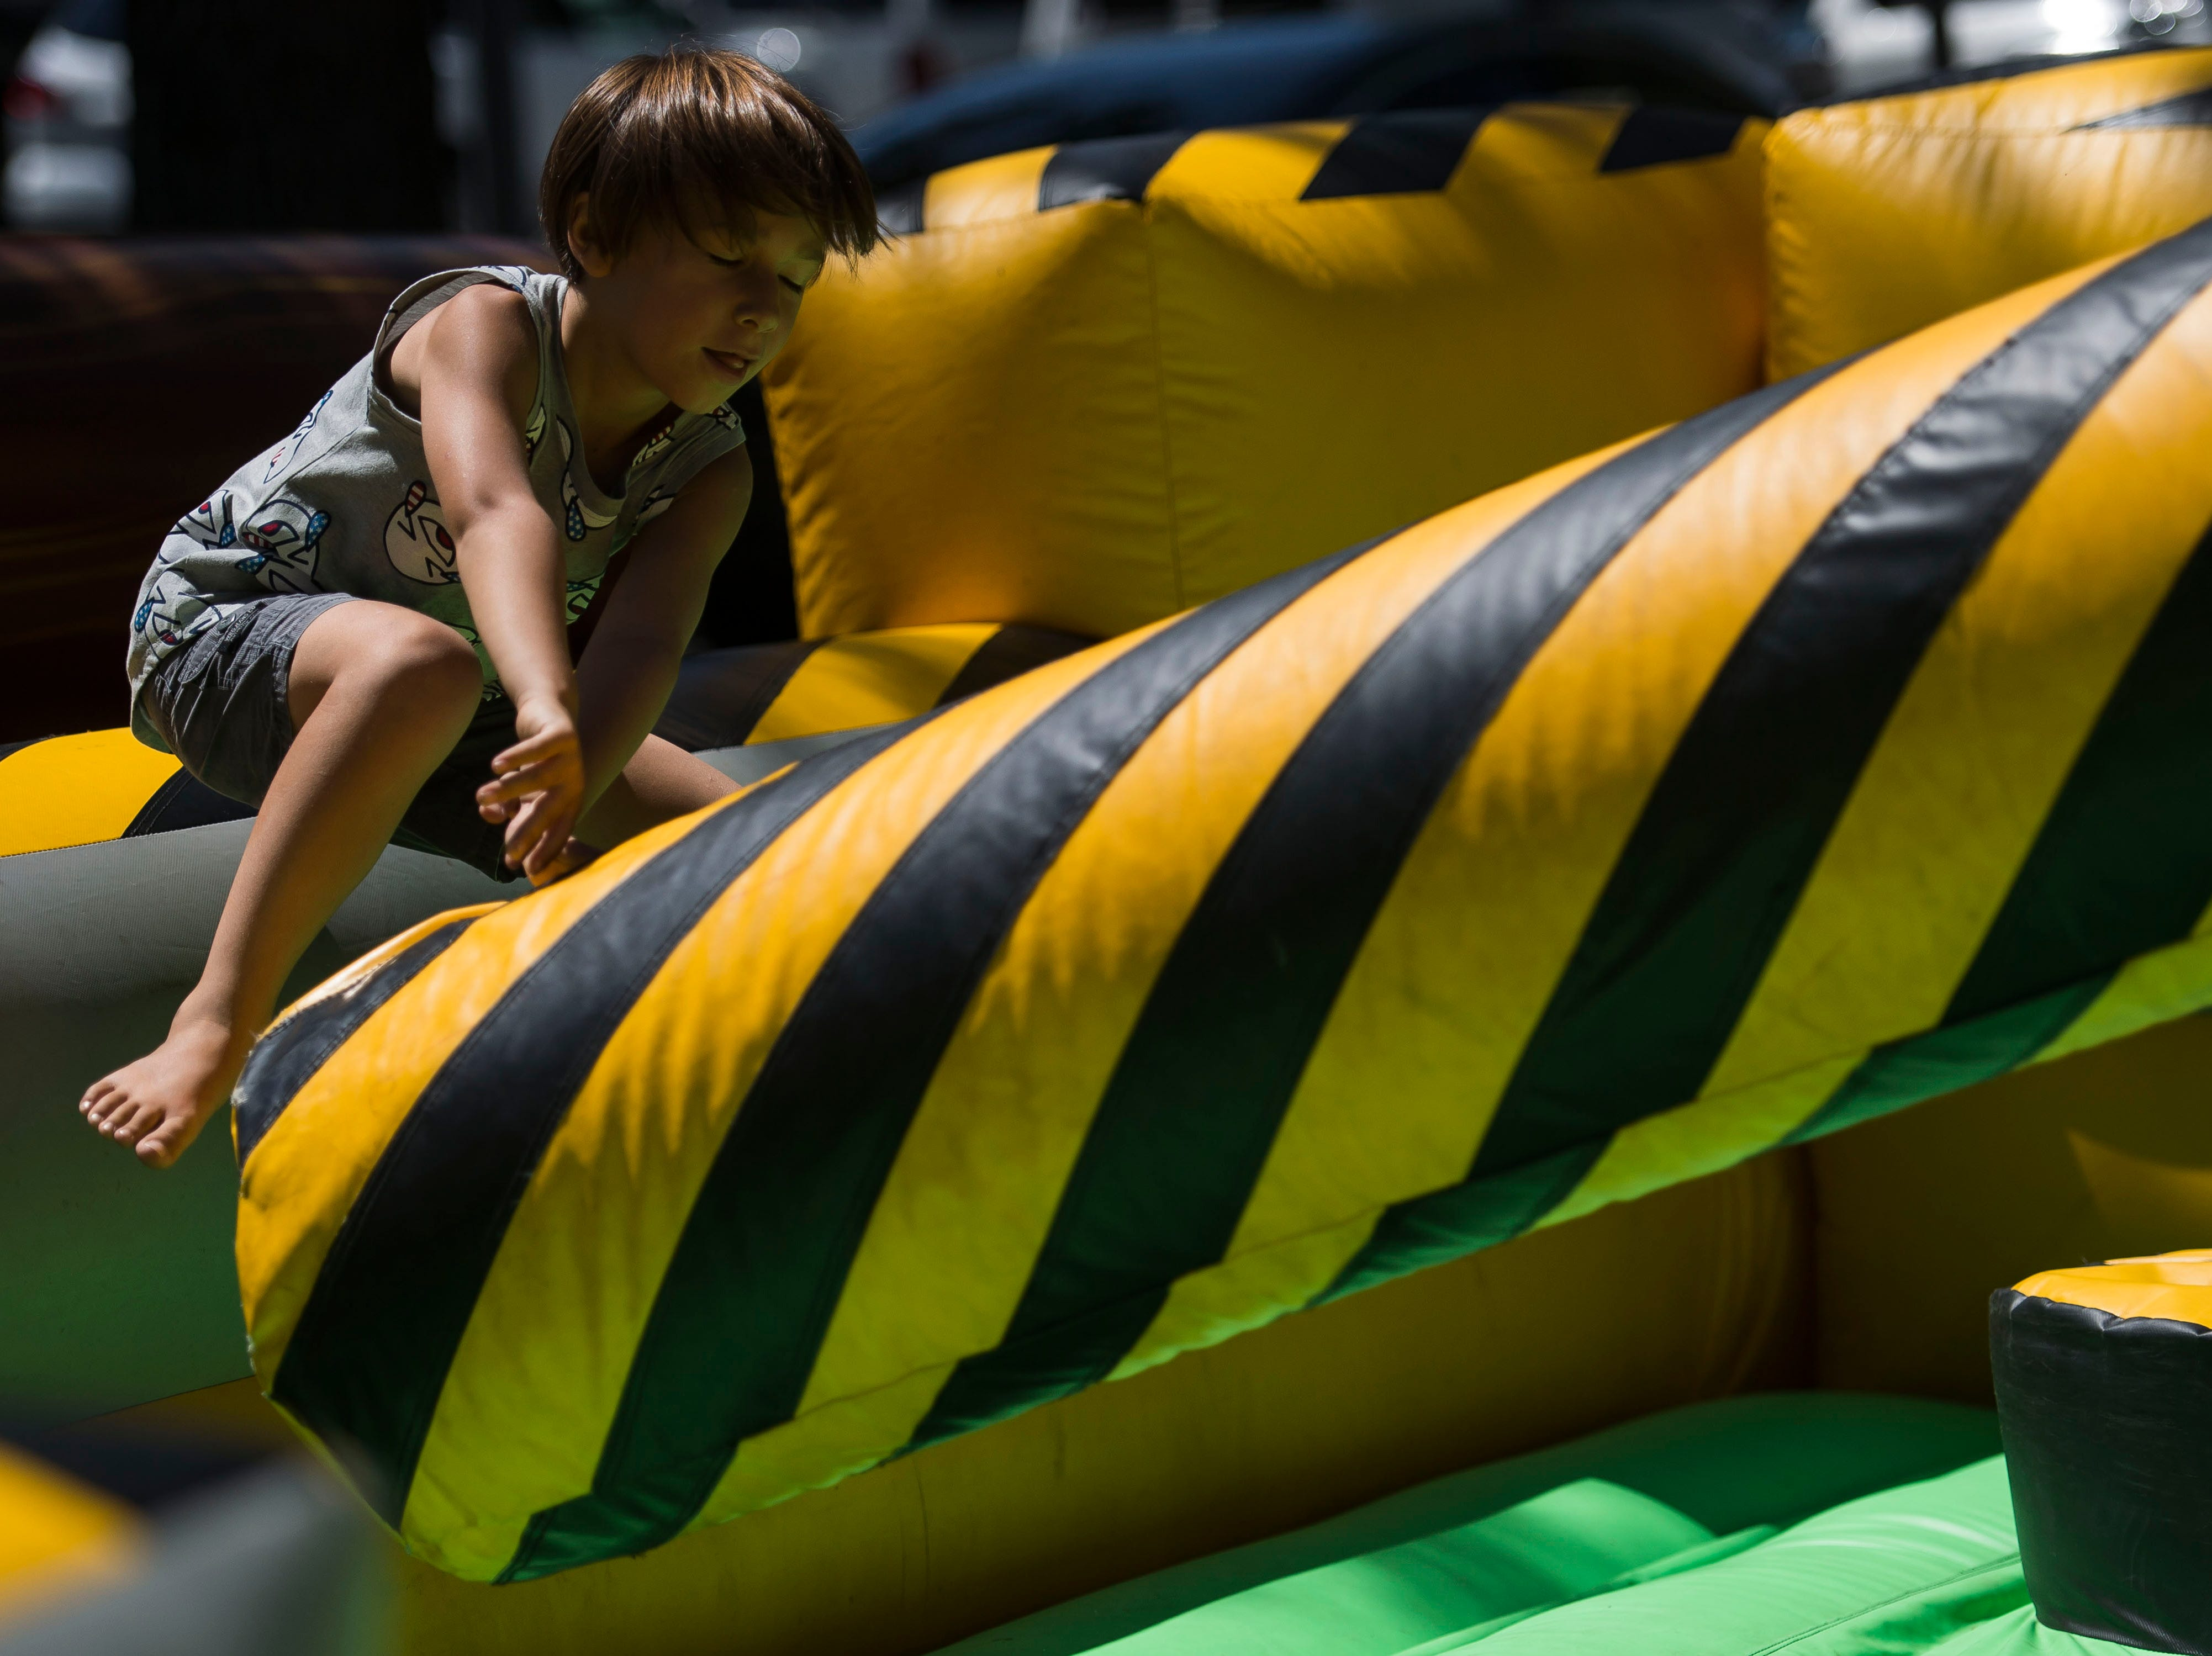 Mason O'Shea-Thompson leaps over an inflatable arm during the second day of Bohemian Nights at NewWestFest on Saturday, Aug. 11, 2018, in Old Town Fort Collins, Colo.